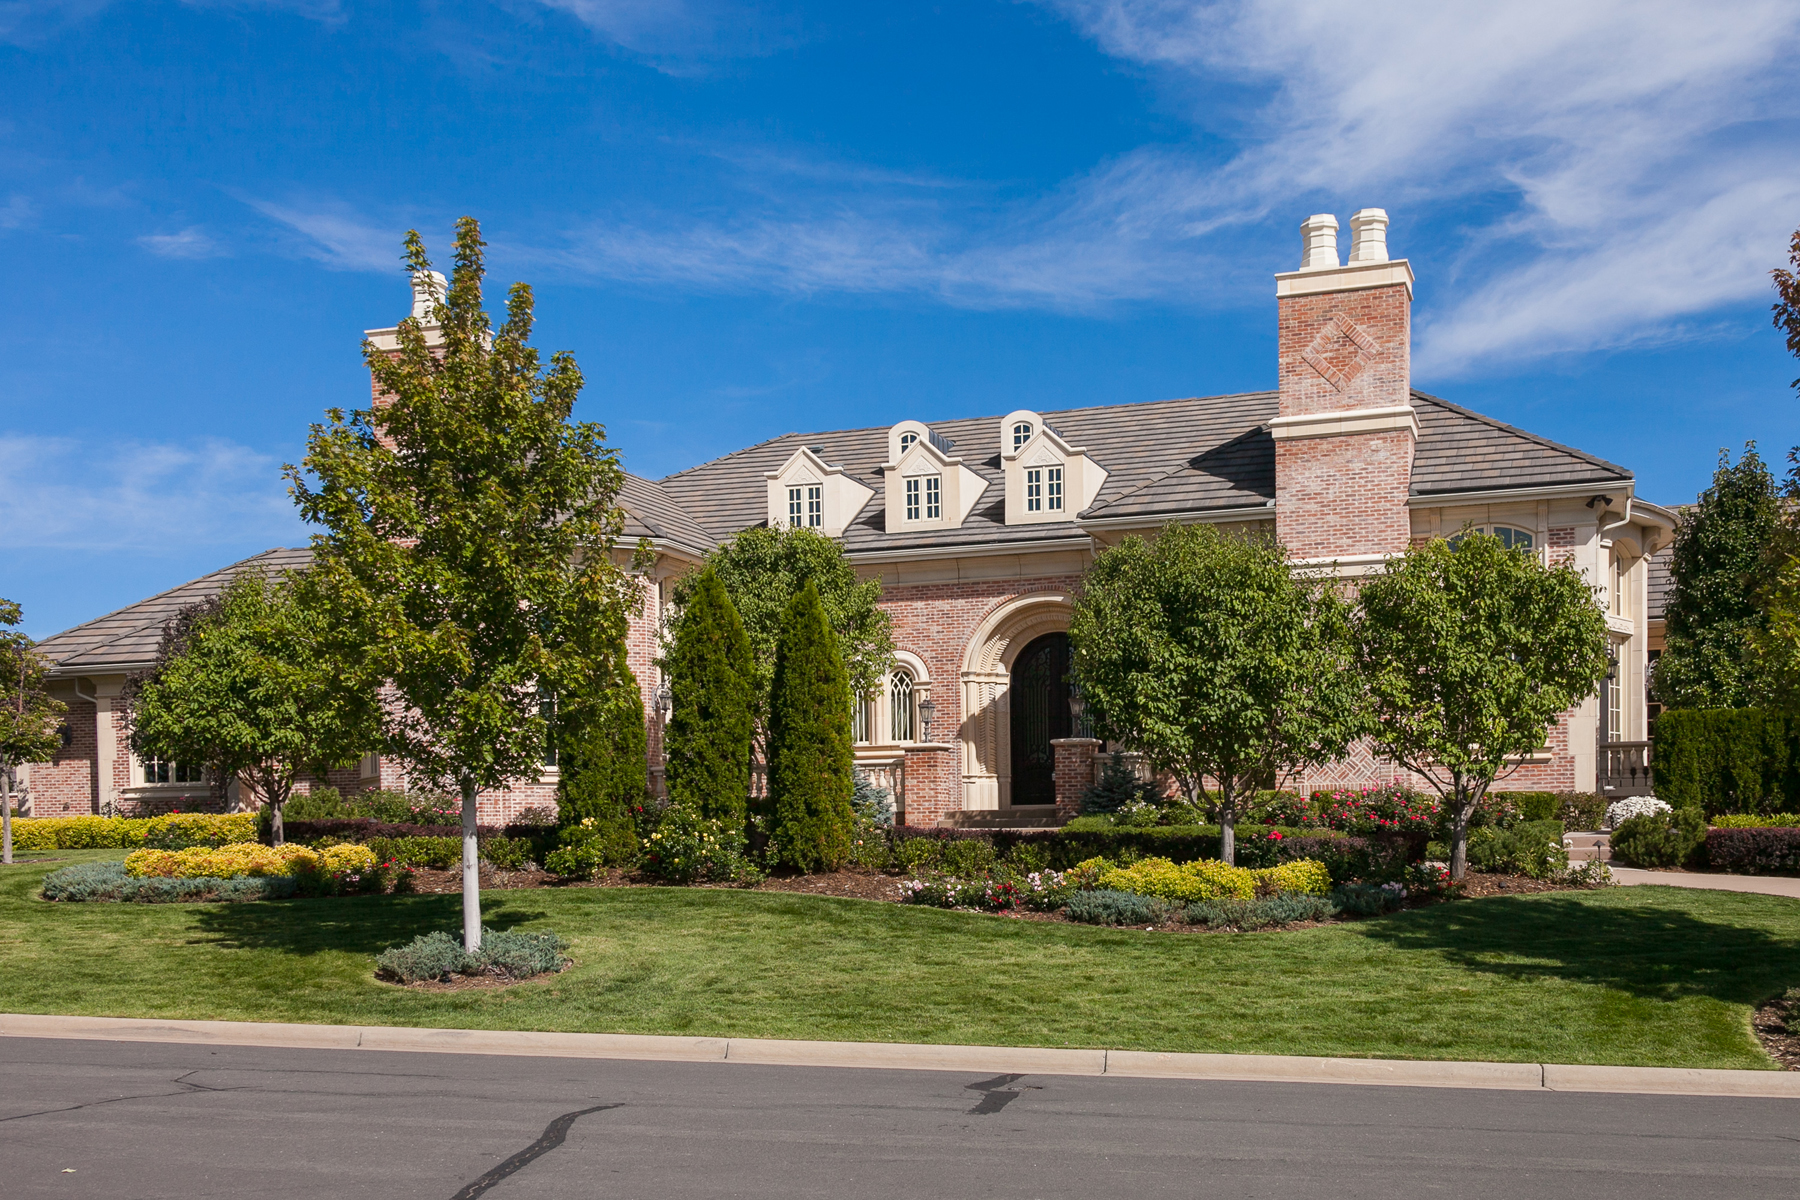 Casa Unifamiliar por un Venta en Stately and sophisticated brick ranch masterpiece 4060 E. Chestnut Court Greenwood Village, Colorado 80121 Estados Unidos